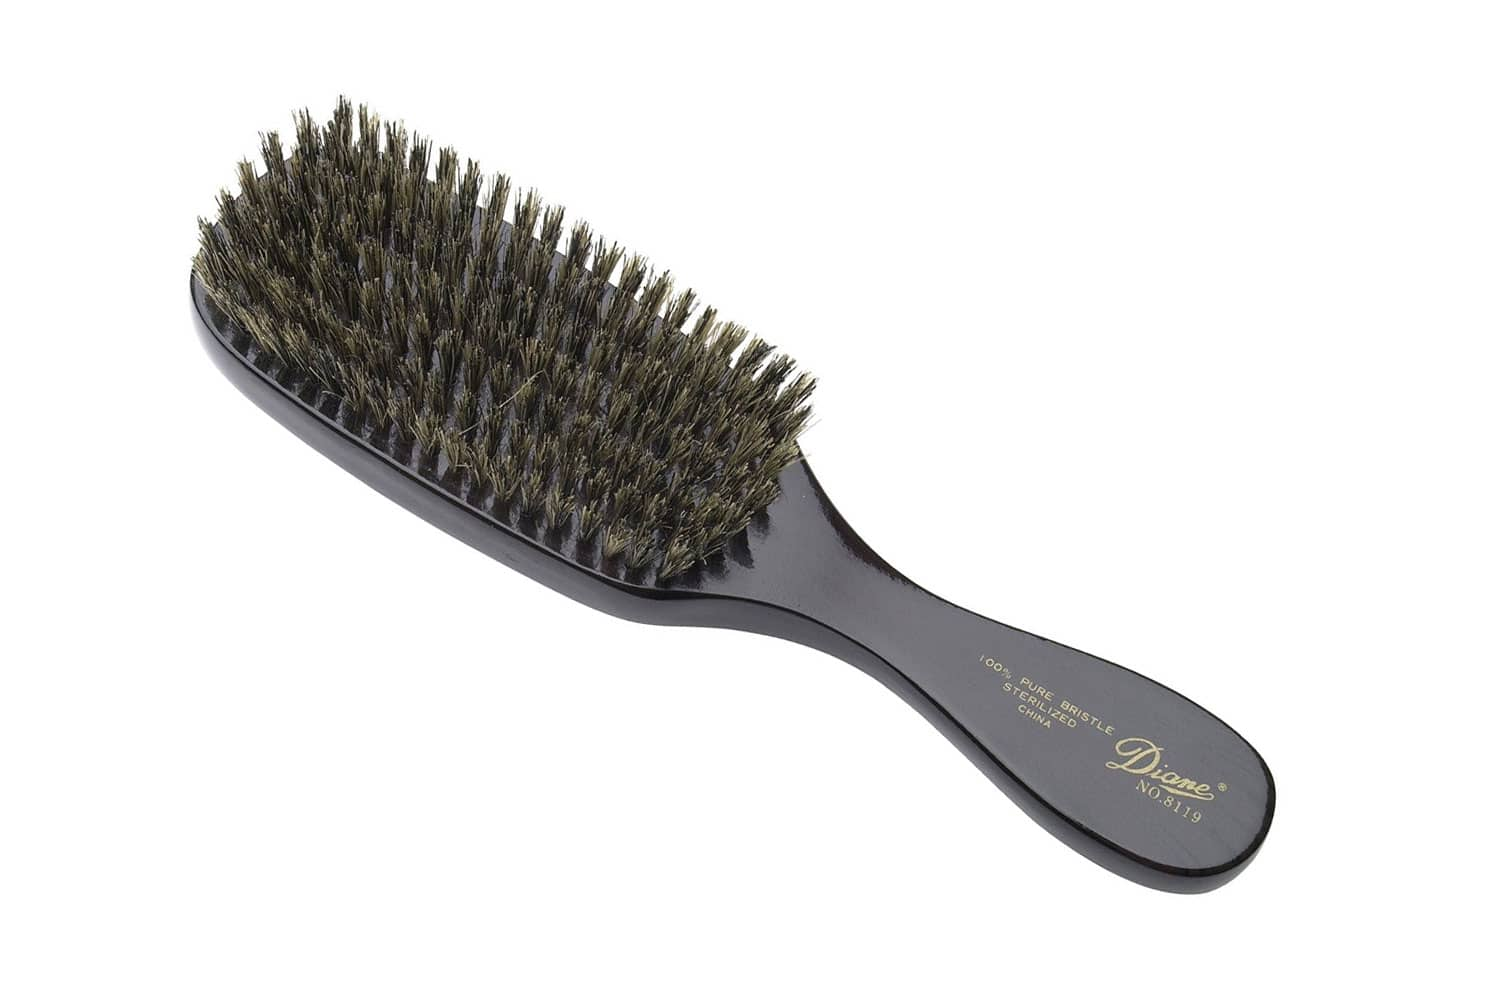 Diane Hair Brush 9 Firm 8119 Barber Supplies Barber